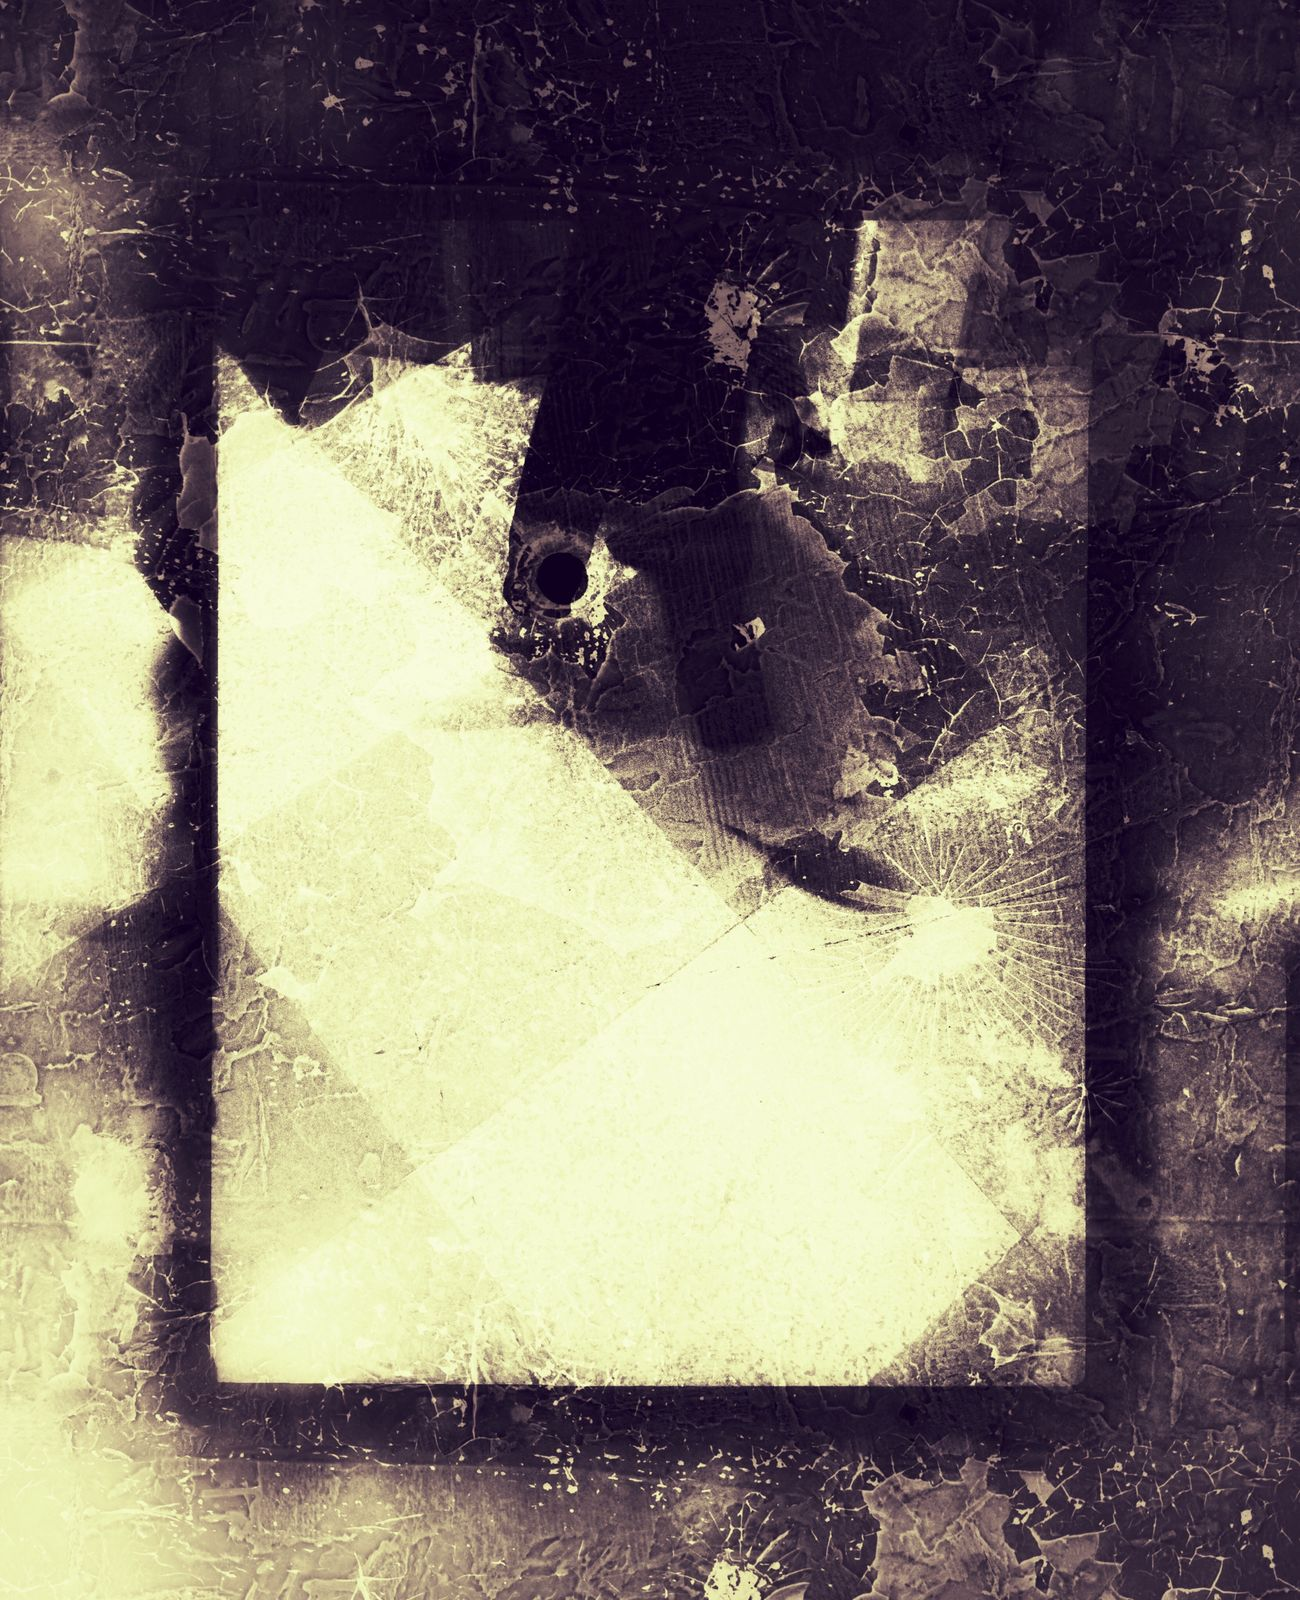 Flying High Walking Shot From The Knee IPhoneography Human Leg Youmobile AMPt_community